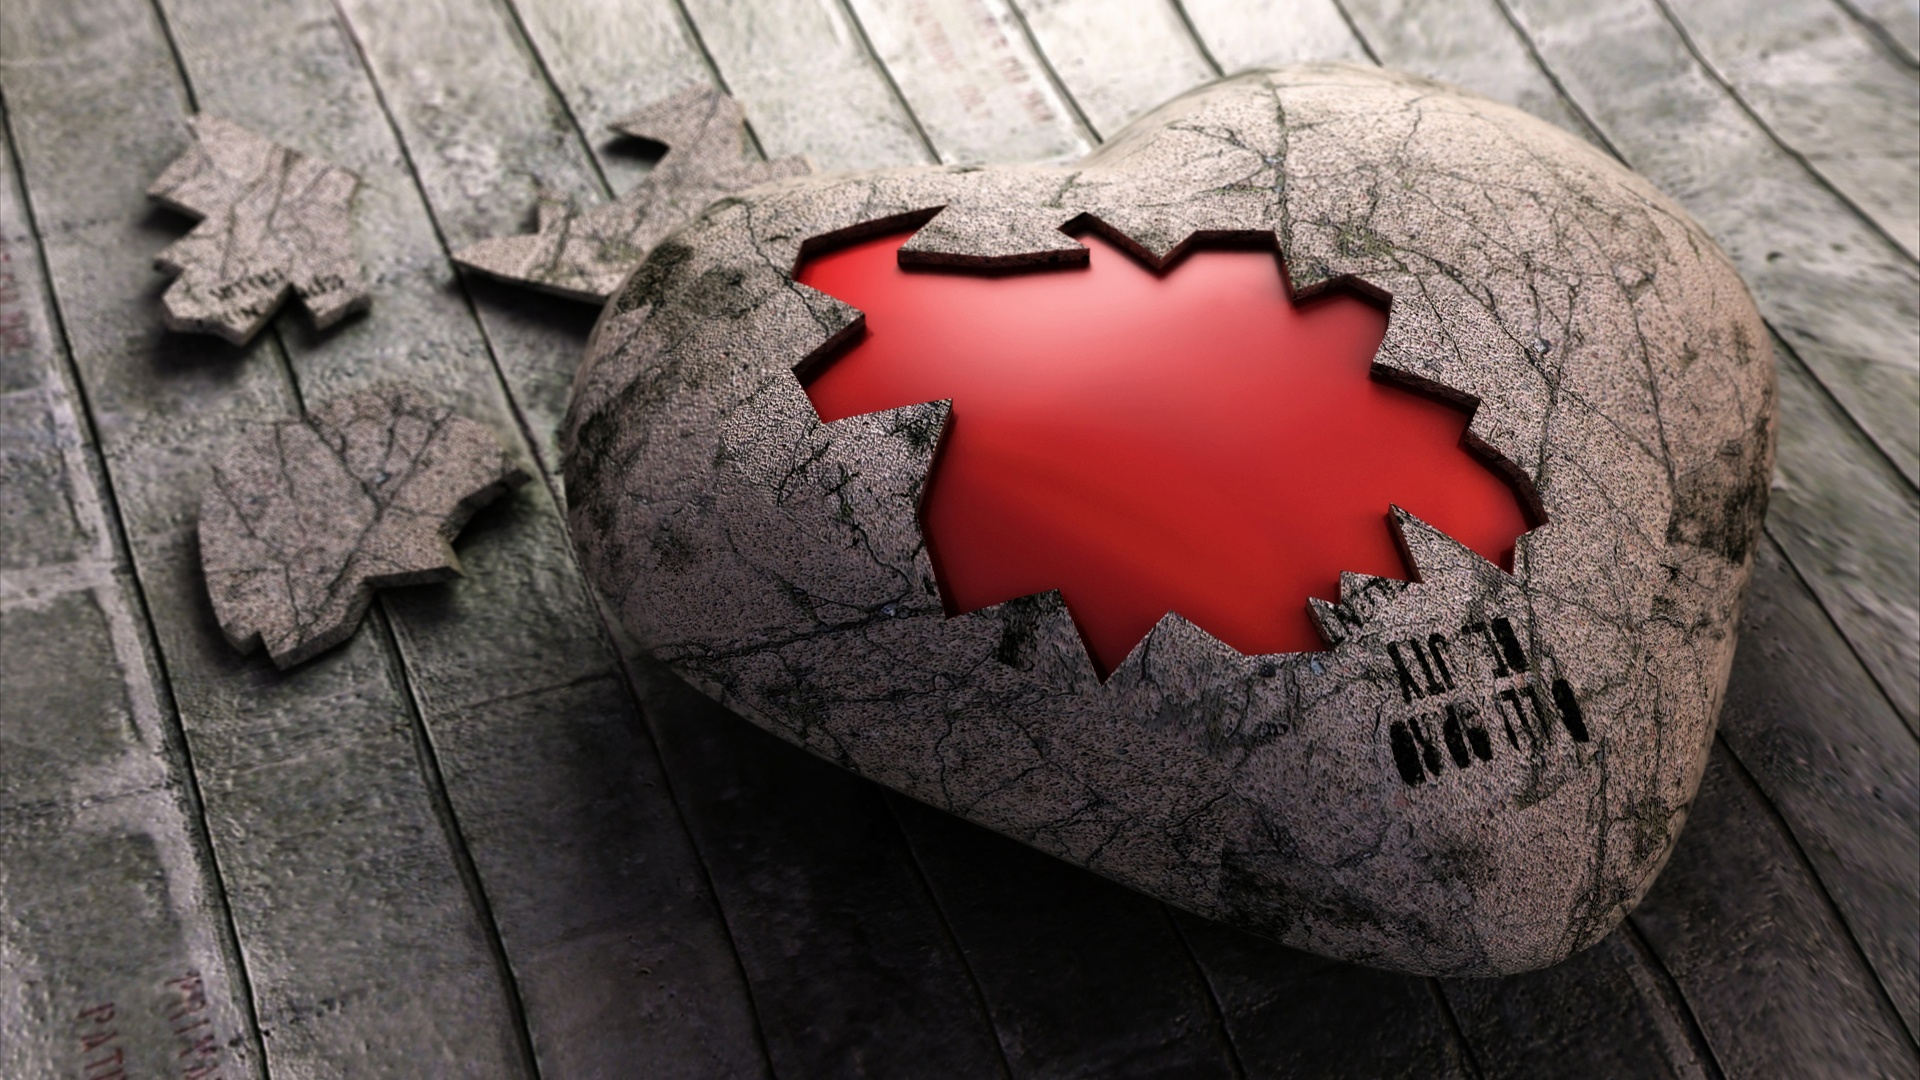 Heart of Stone 3D Wallpaper HD Wallpaper 1920x1080